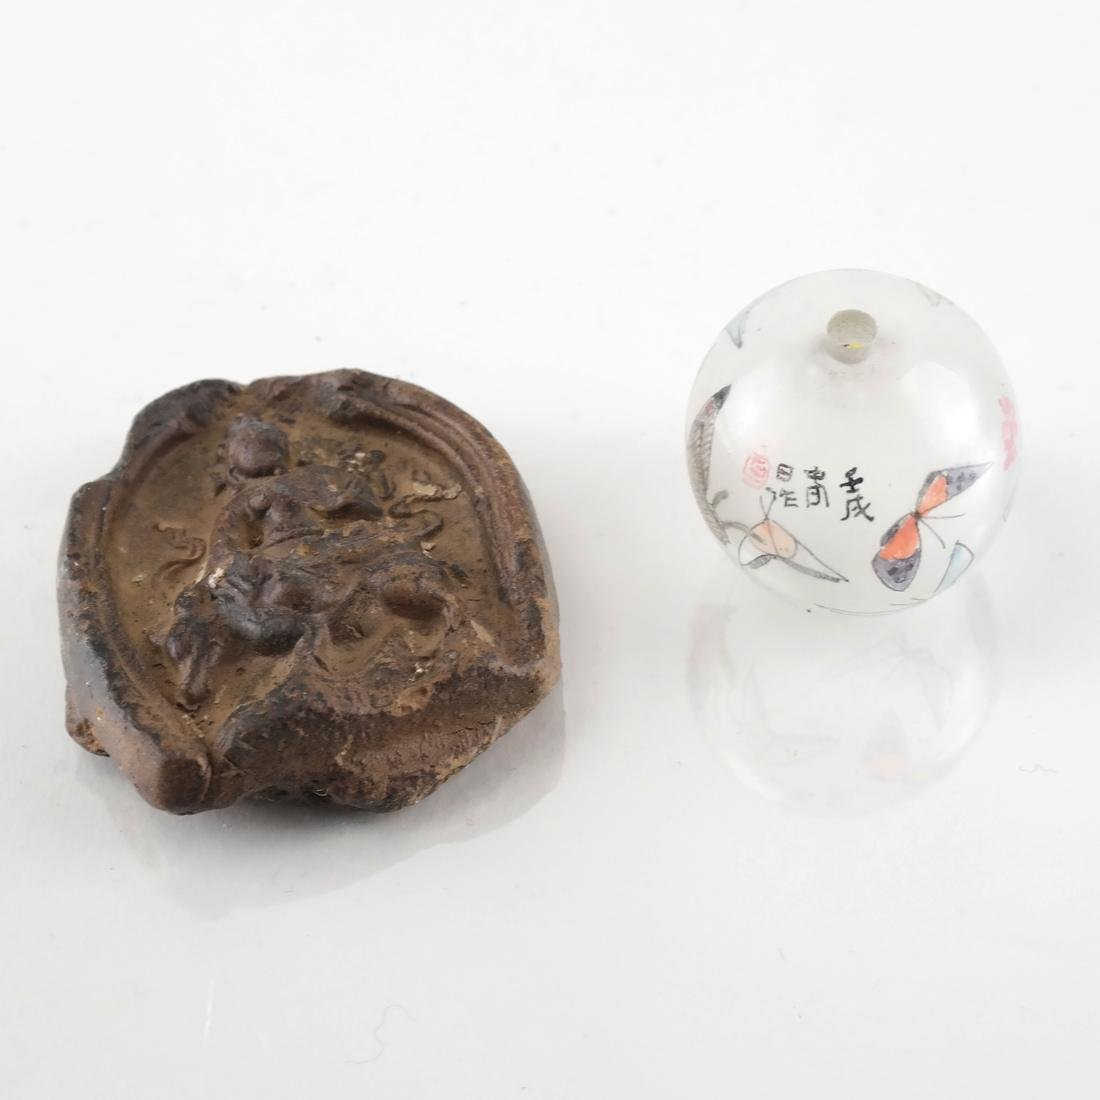 Early Asian Artifact & Ornament